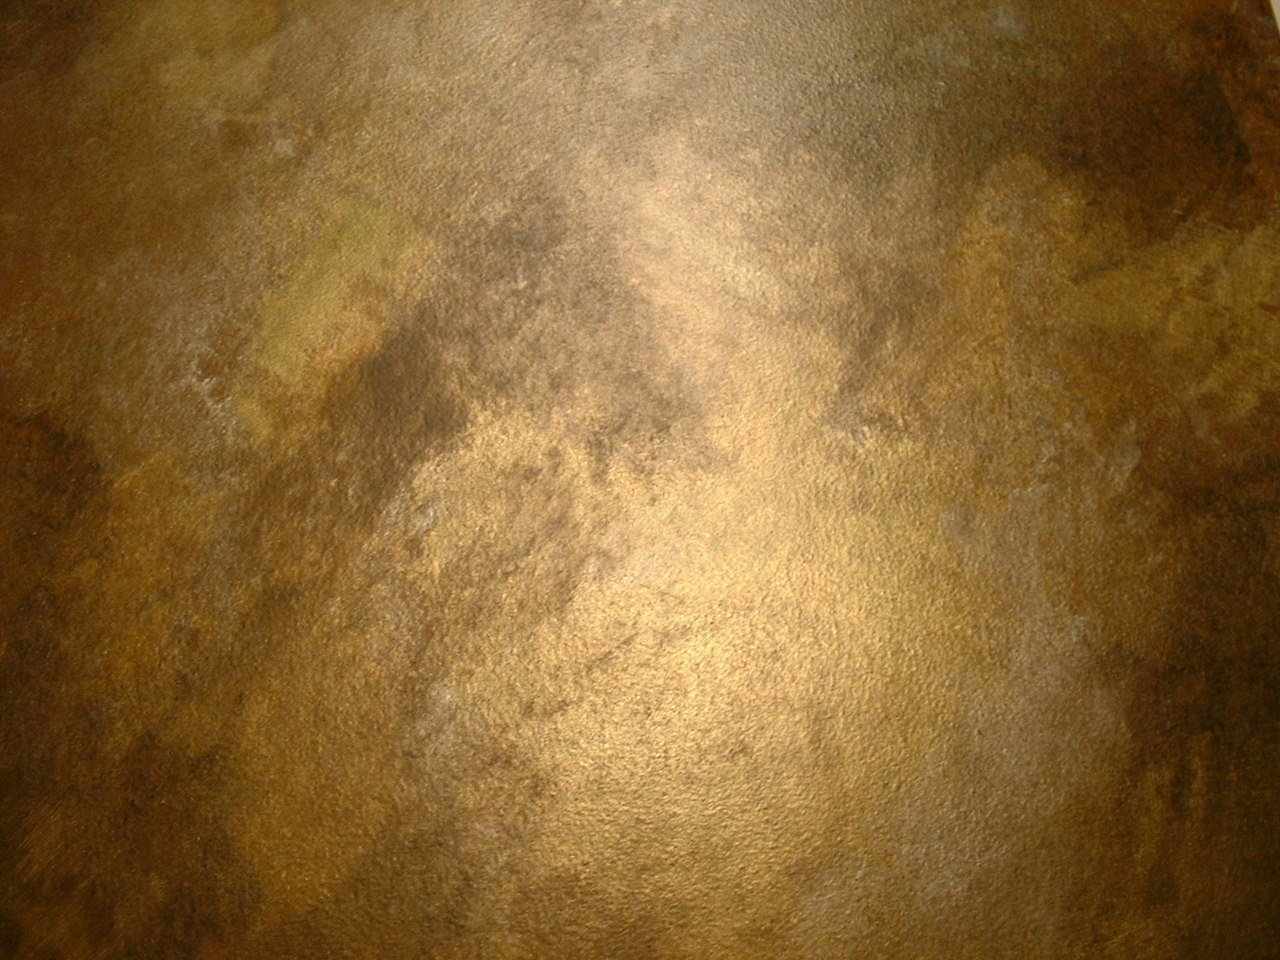 IMAGE bronze background photoshop 1280x960